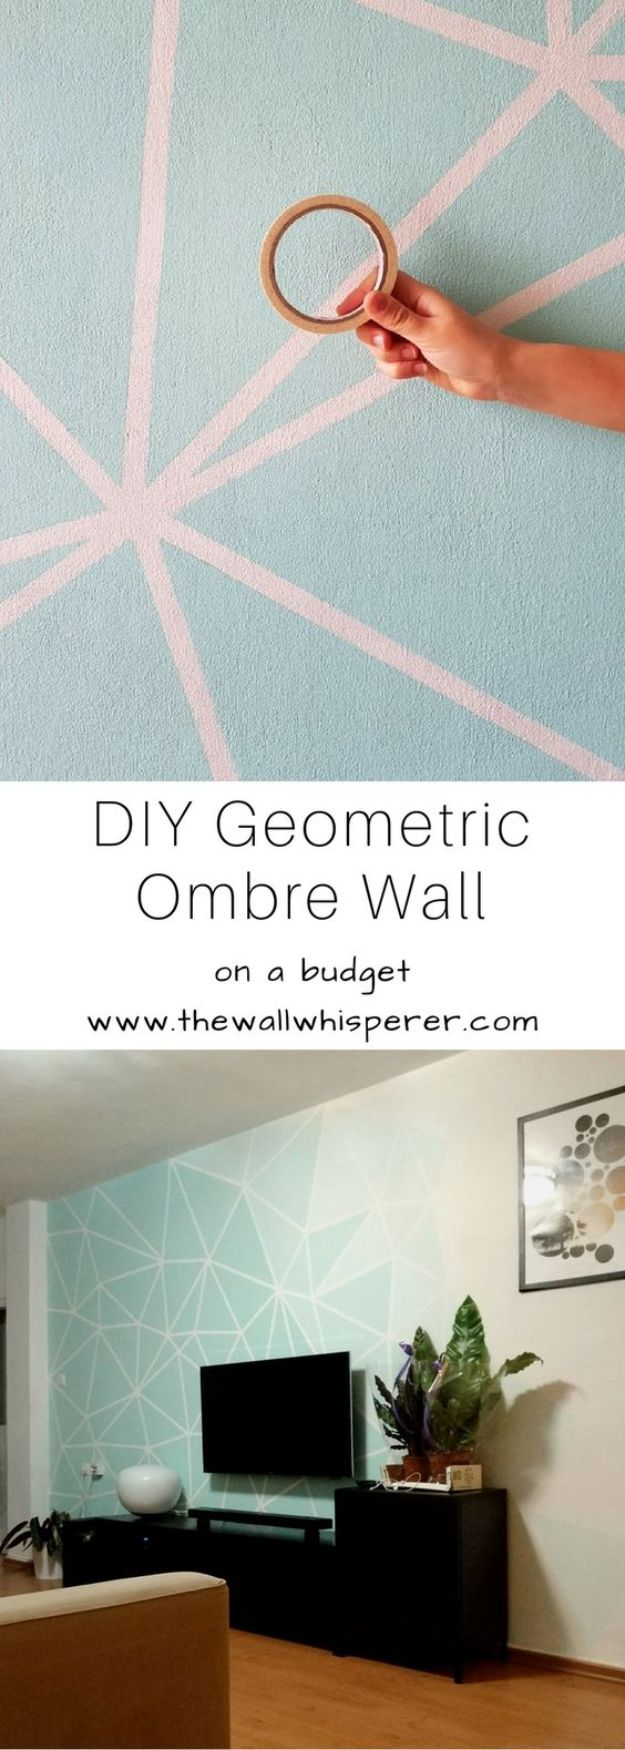 Cheap DIY Living Room Decor Ideas - DIY Geometric Wallpaper - Cool Modern, Rustic Creative Farmhouse Home Decor On A Budget - Do It Yourself Coffee Tables, Wall Art, Rugs, Pillows and Chairs. Step by Step Tutorials and Instructions http://diyjoy.com/cheap-diy-living-room-decor